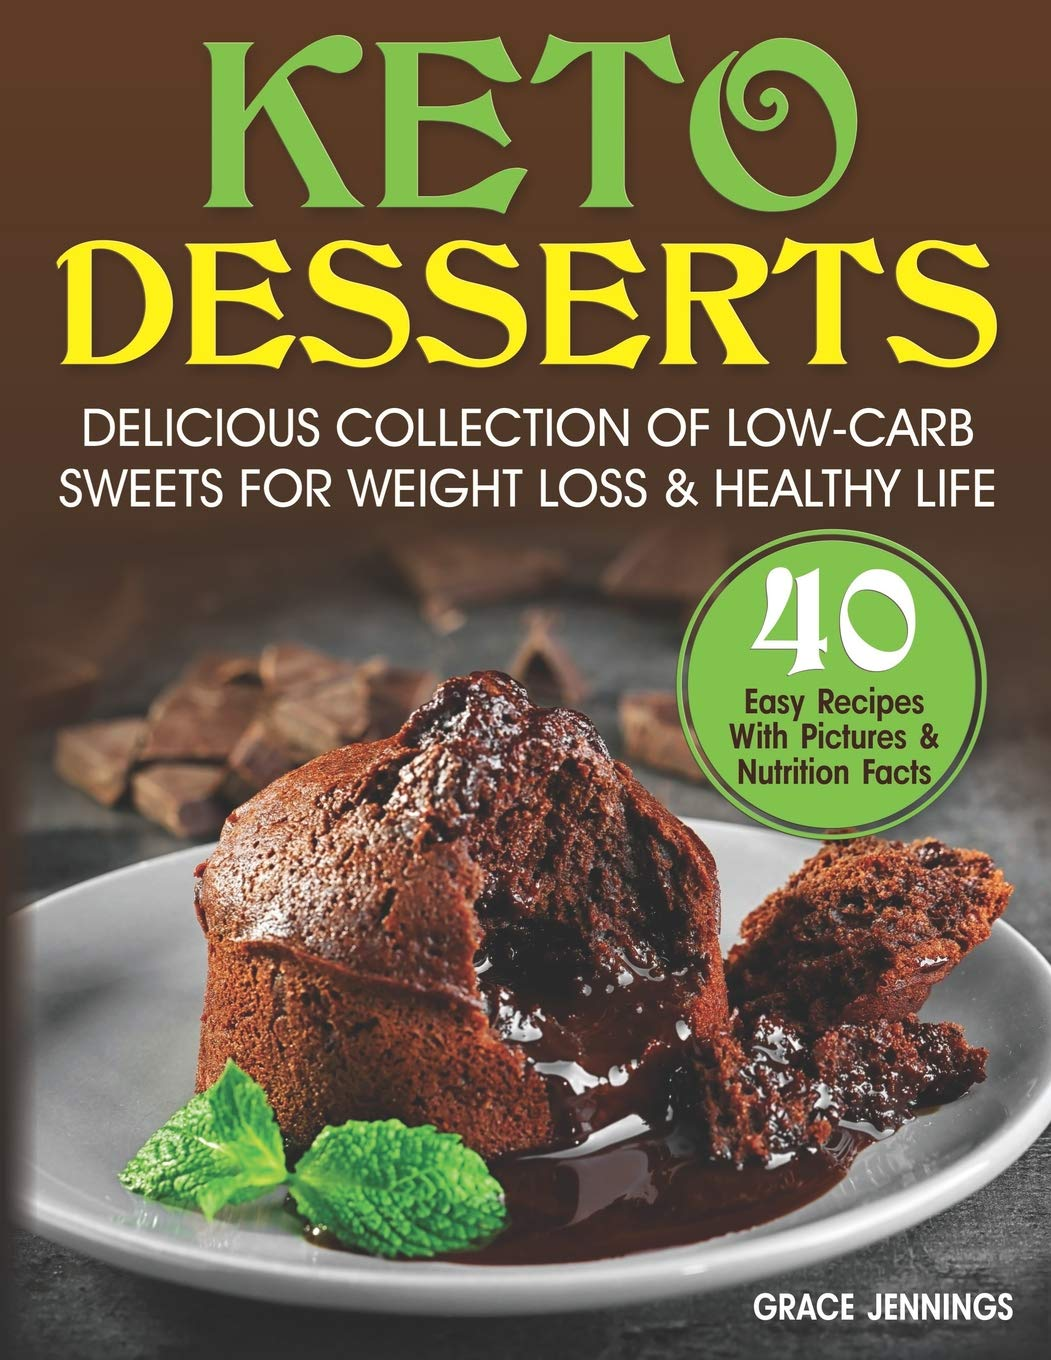 Keto-Friendly Dessert Recipes  Keto Sweets Price Will Drop